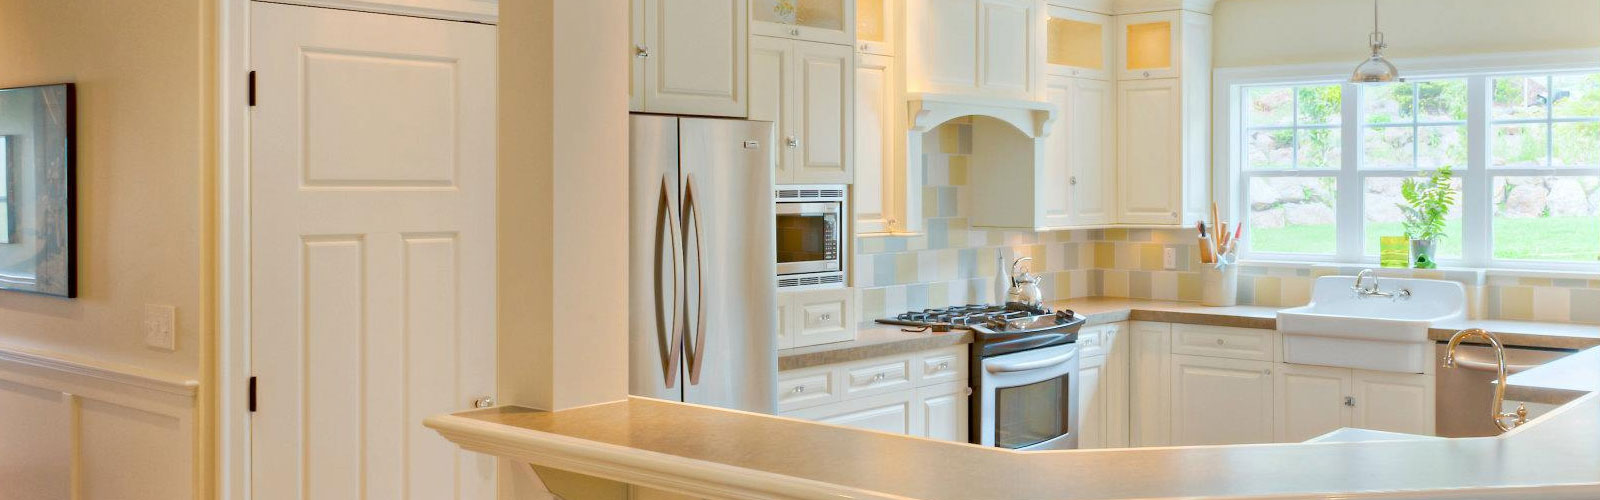 Top 40 Woodworks Leaders In Commercial Residential Millwork